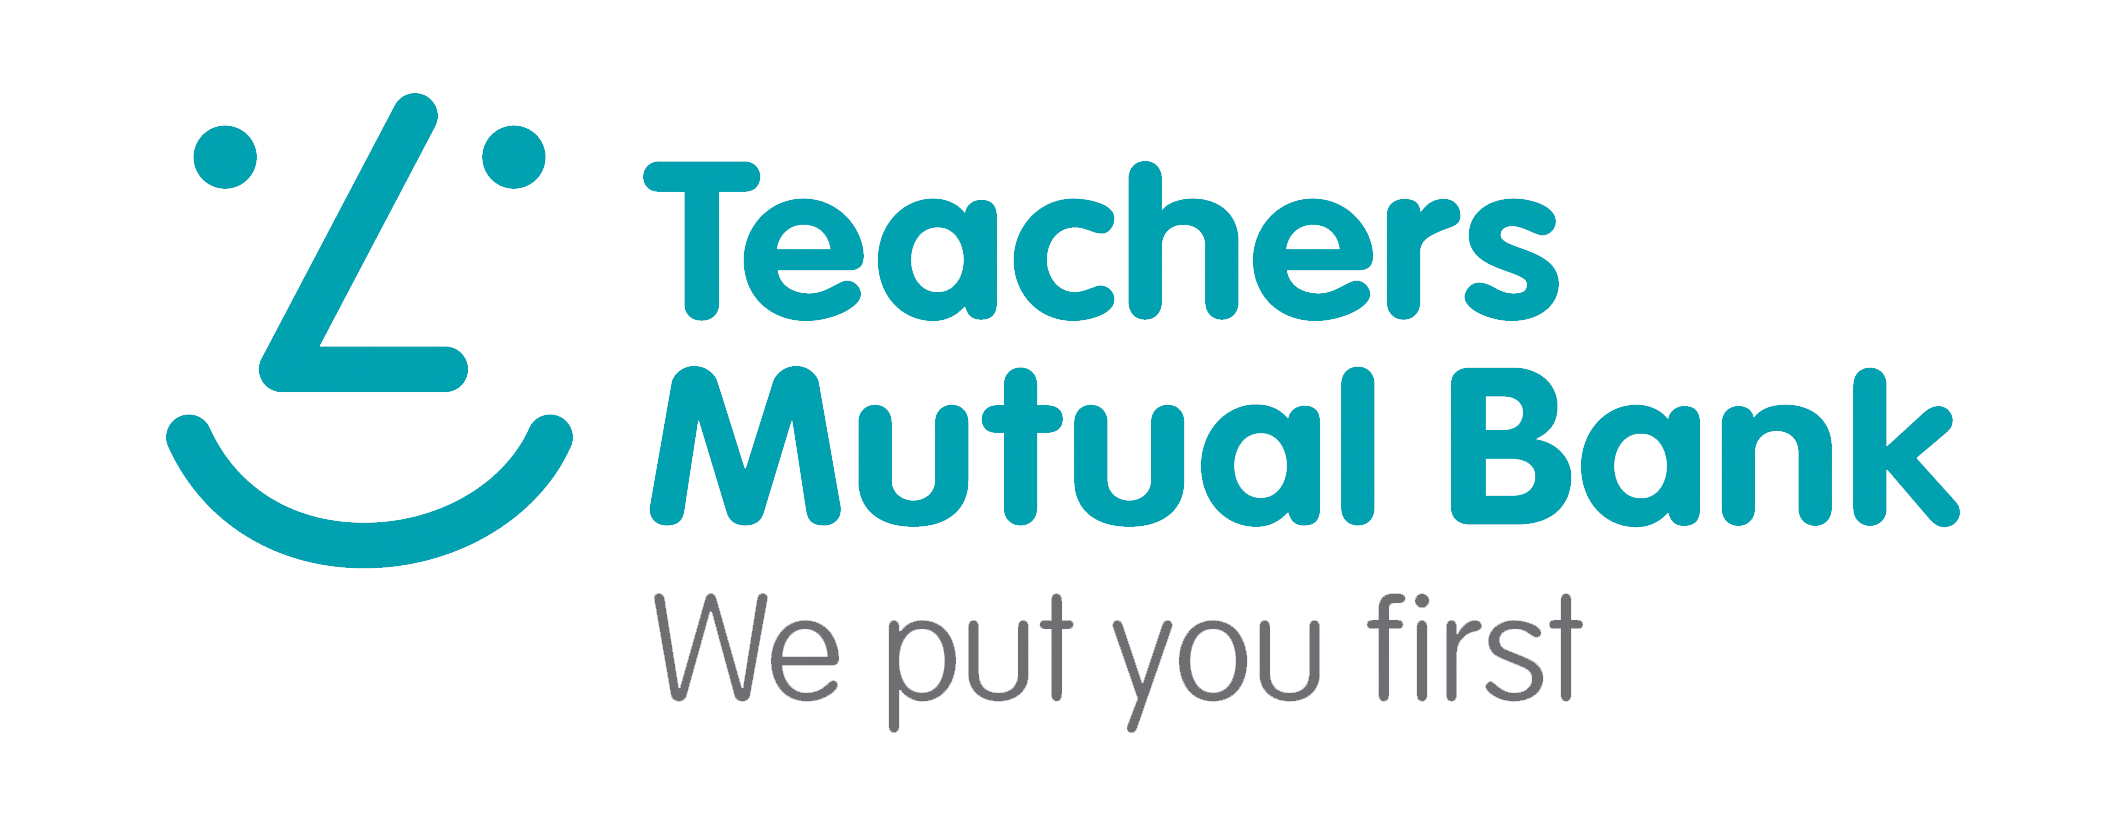 Teachers-Mutual-Bank-Logo.png